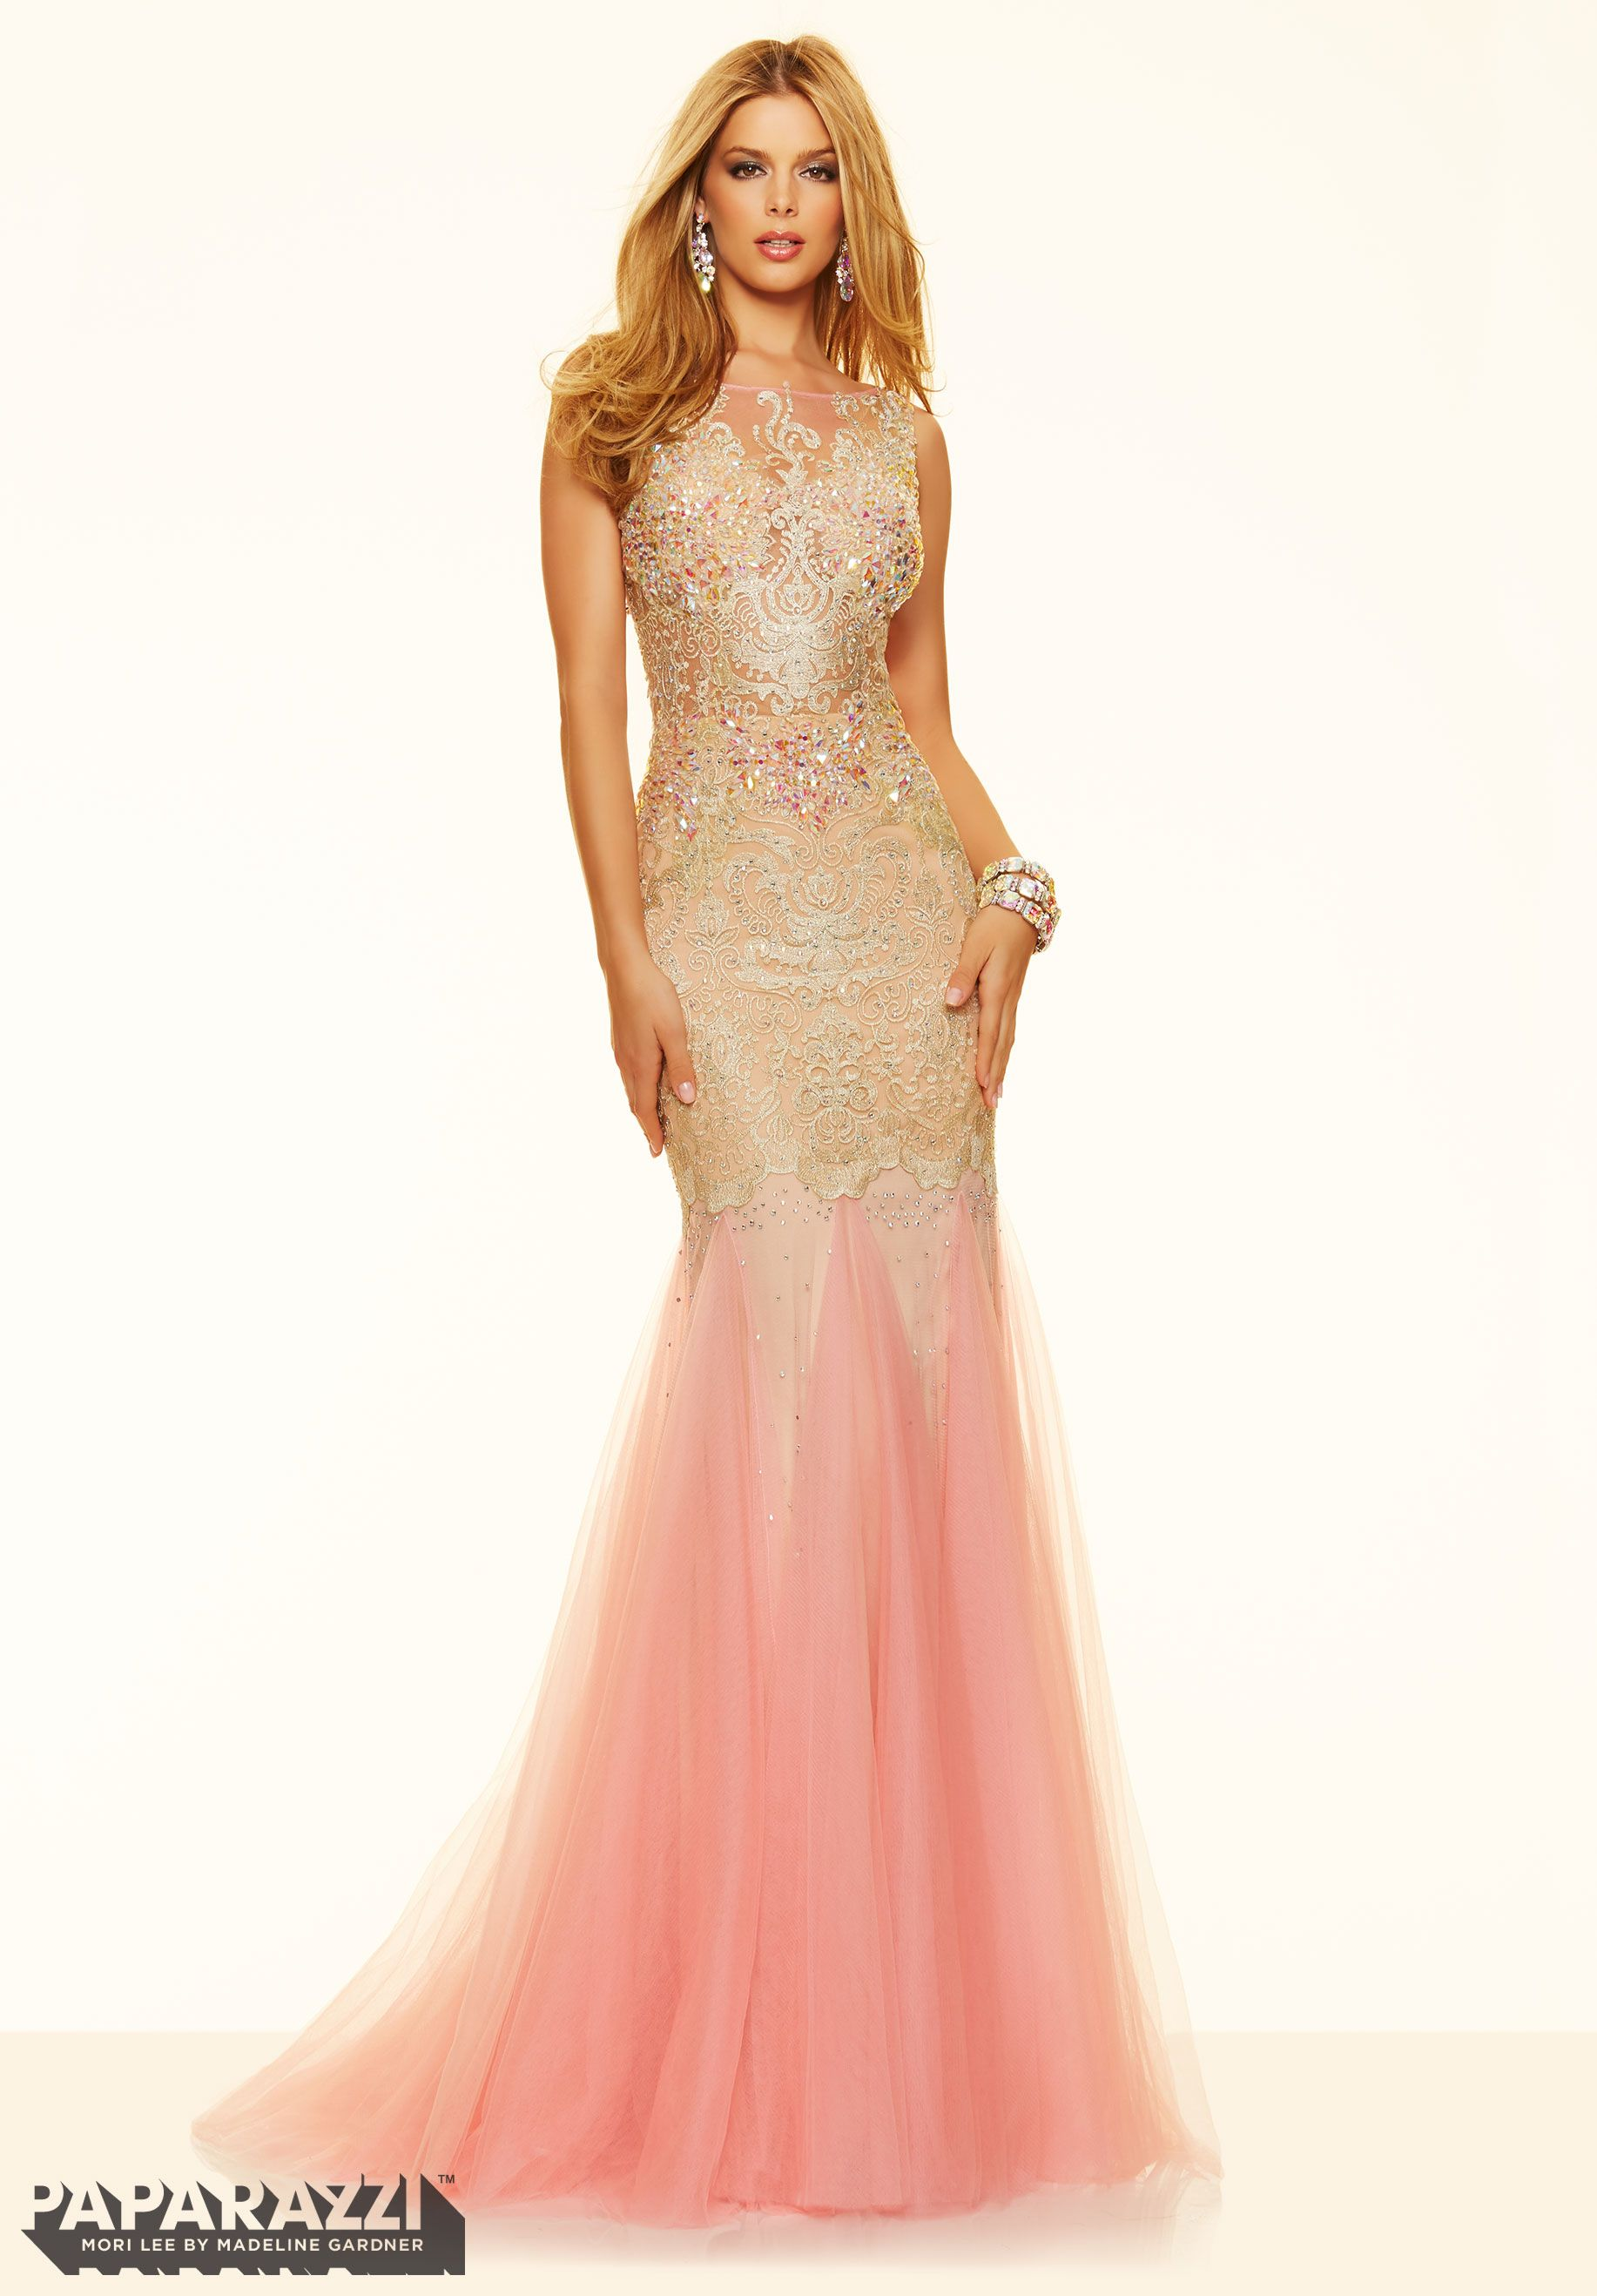 c18971814 Prom dresses by Paparazzi Prom Lace and Beading on Net with 2 Tone Fly Away  Skirt Zipper Back Closure. Colors Available  Rose Gold